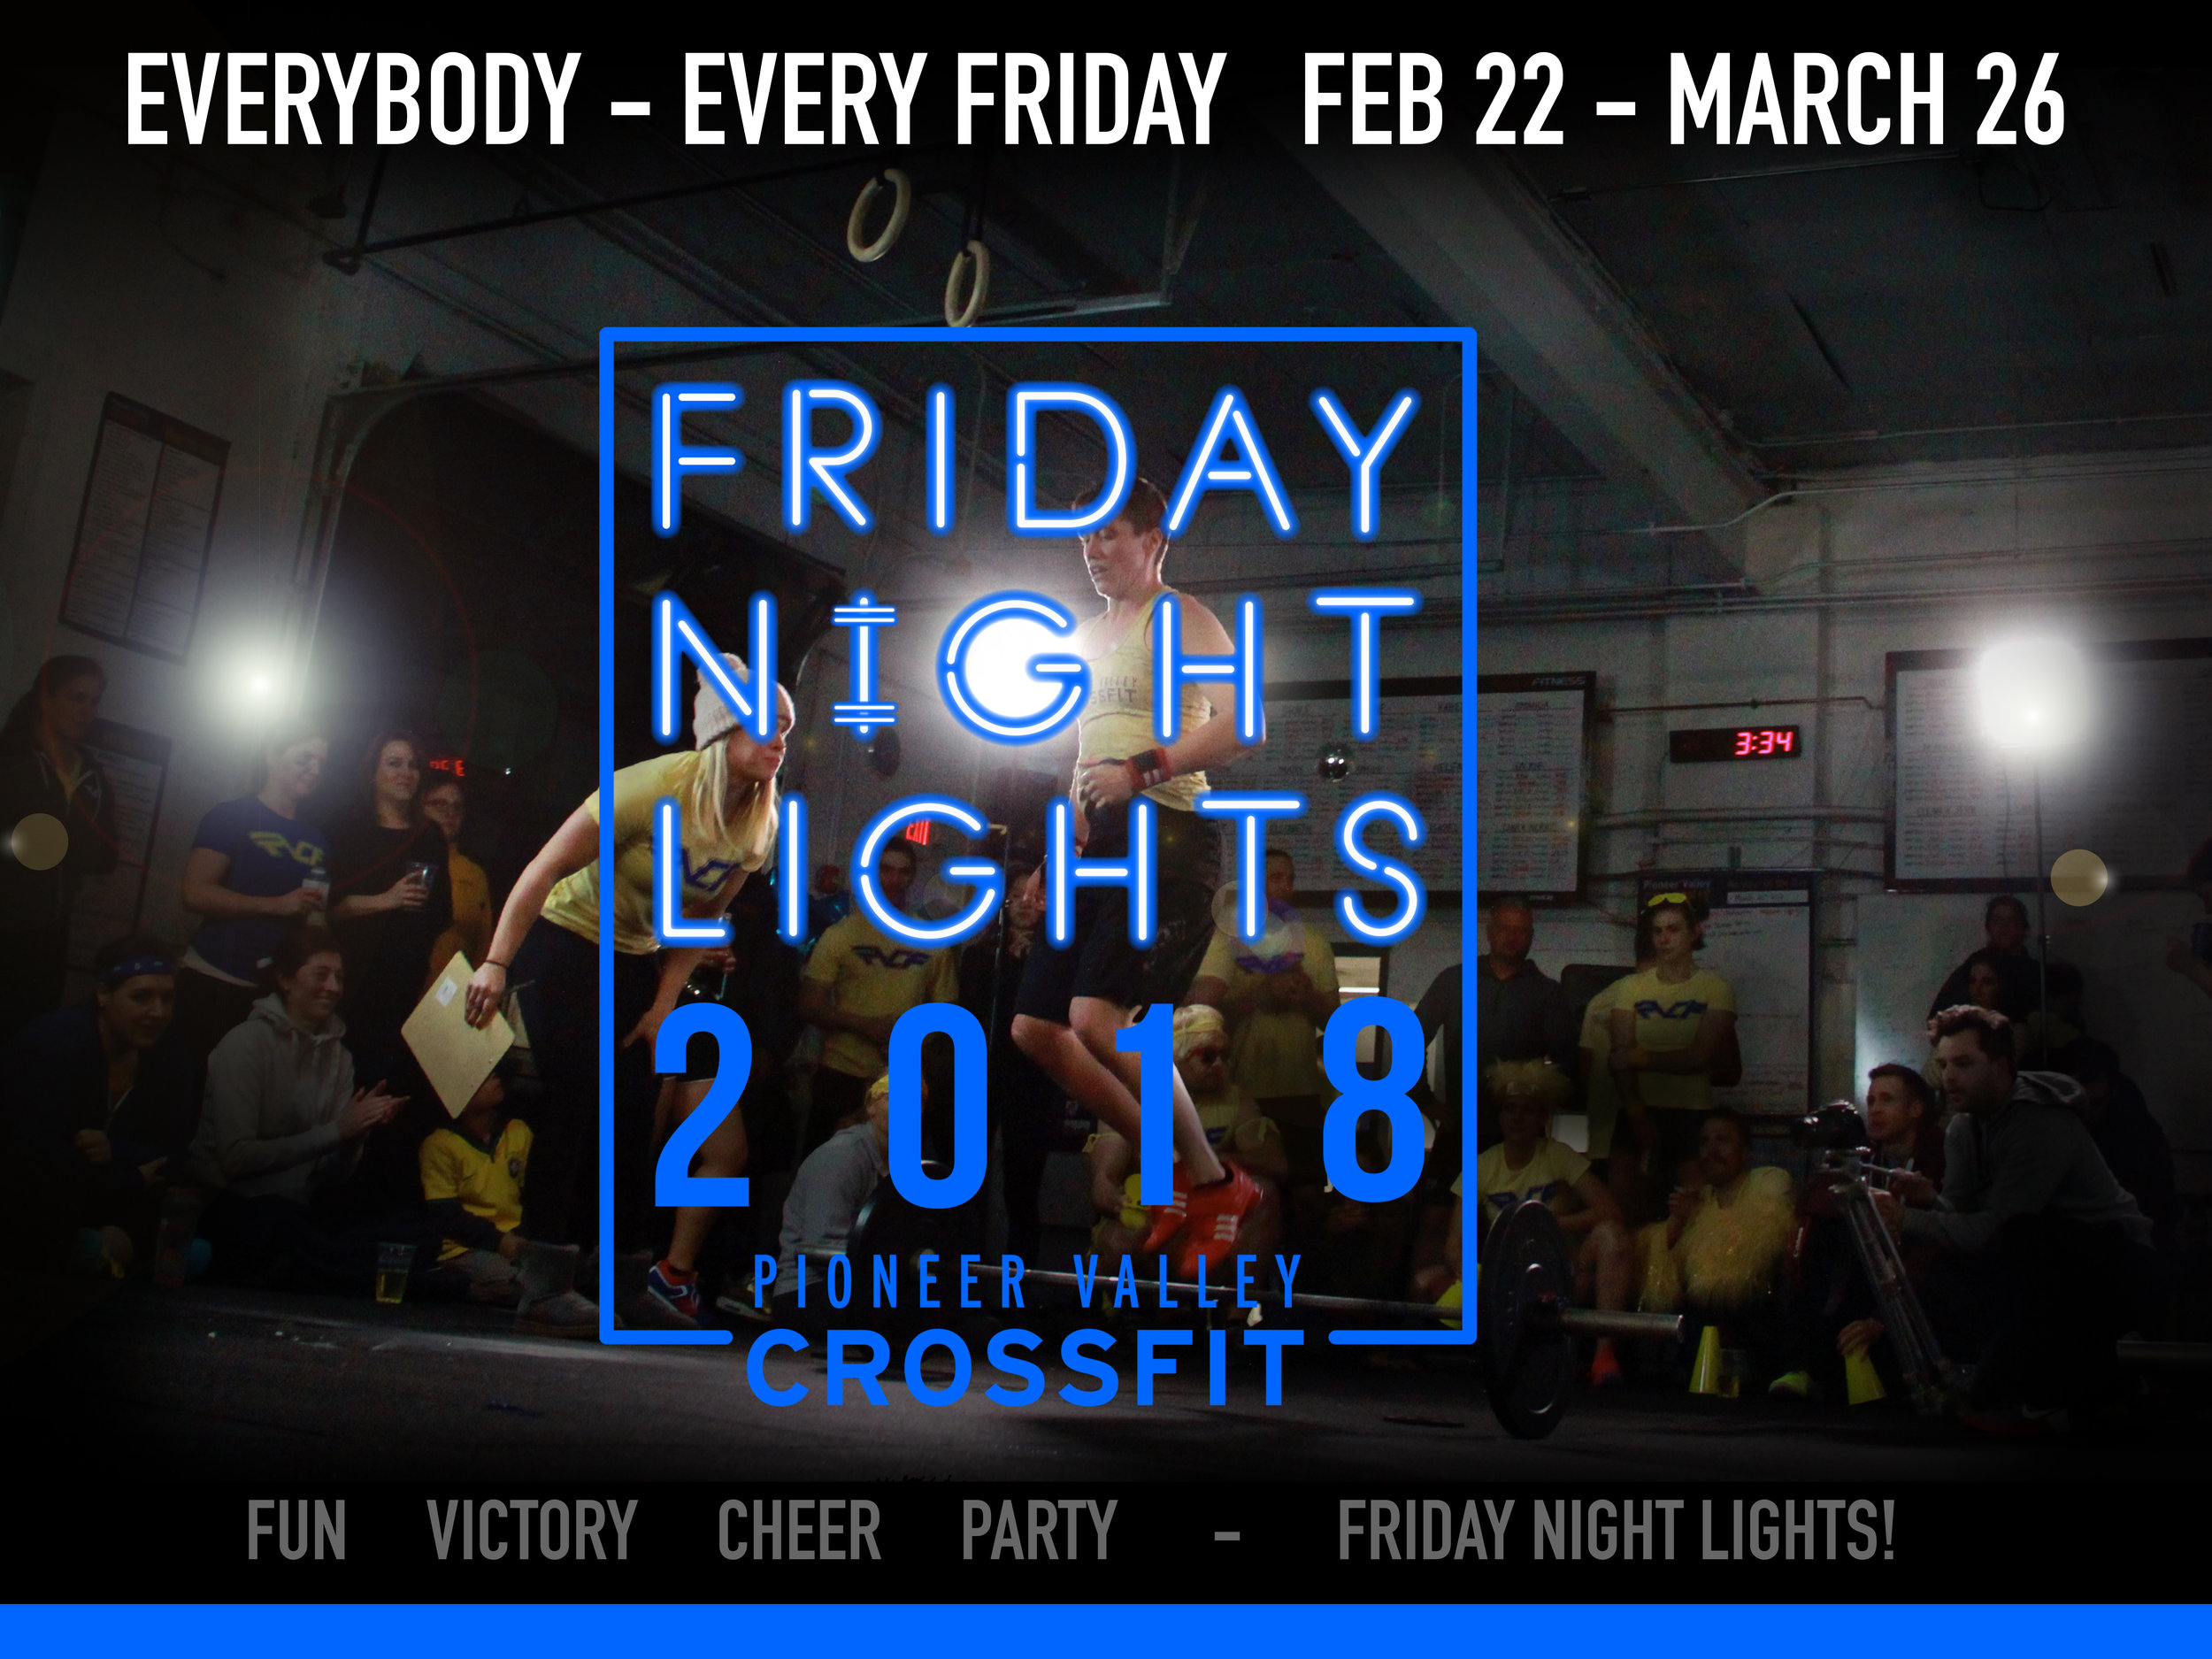 If you haven't checked out the fun at the gym, Friday Night will be the best time to stop by! Cheer on your friends and come to the award ceremony and party at 8.00!